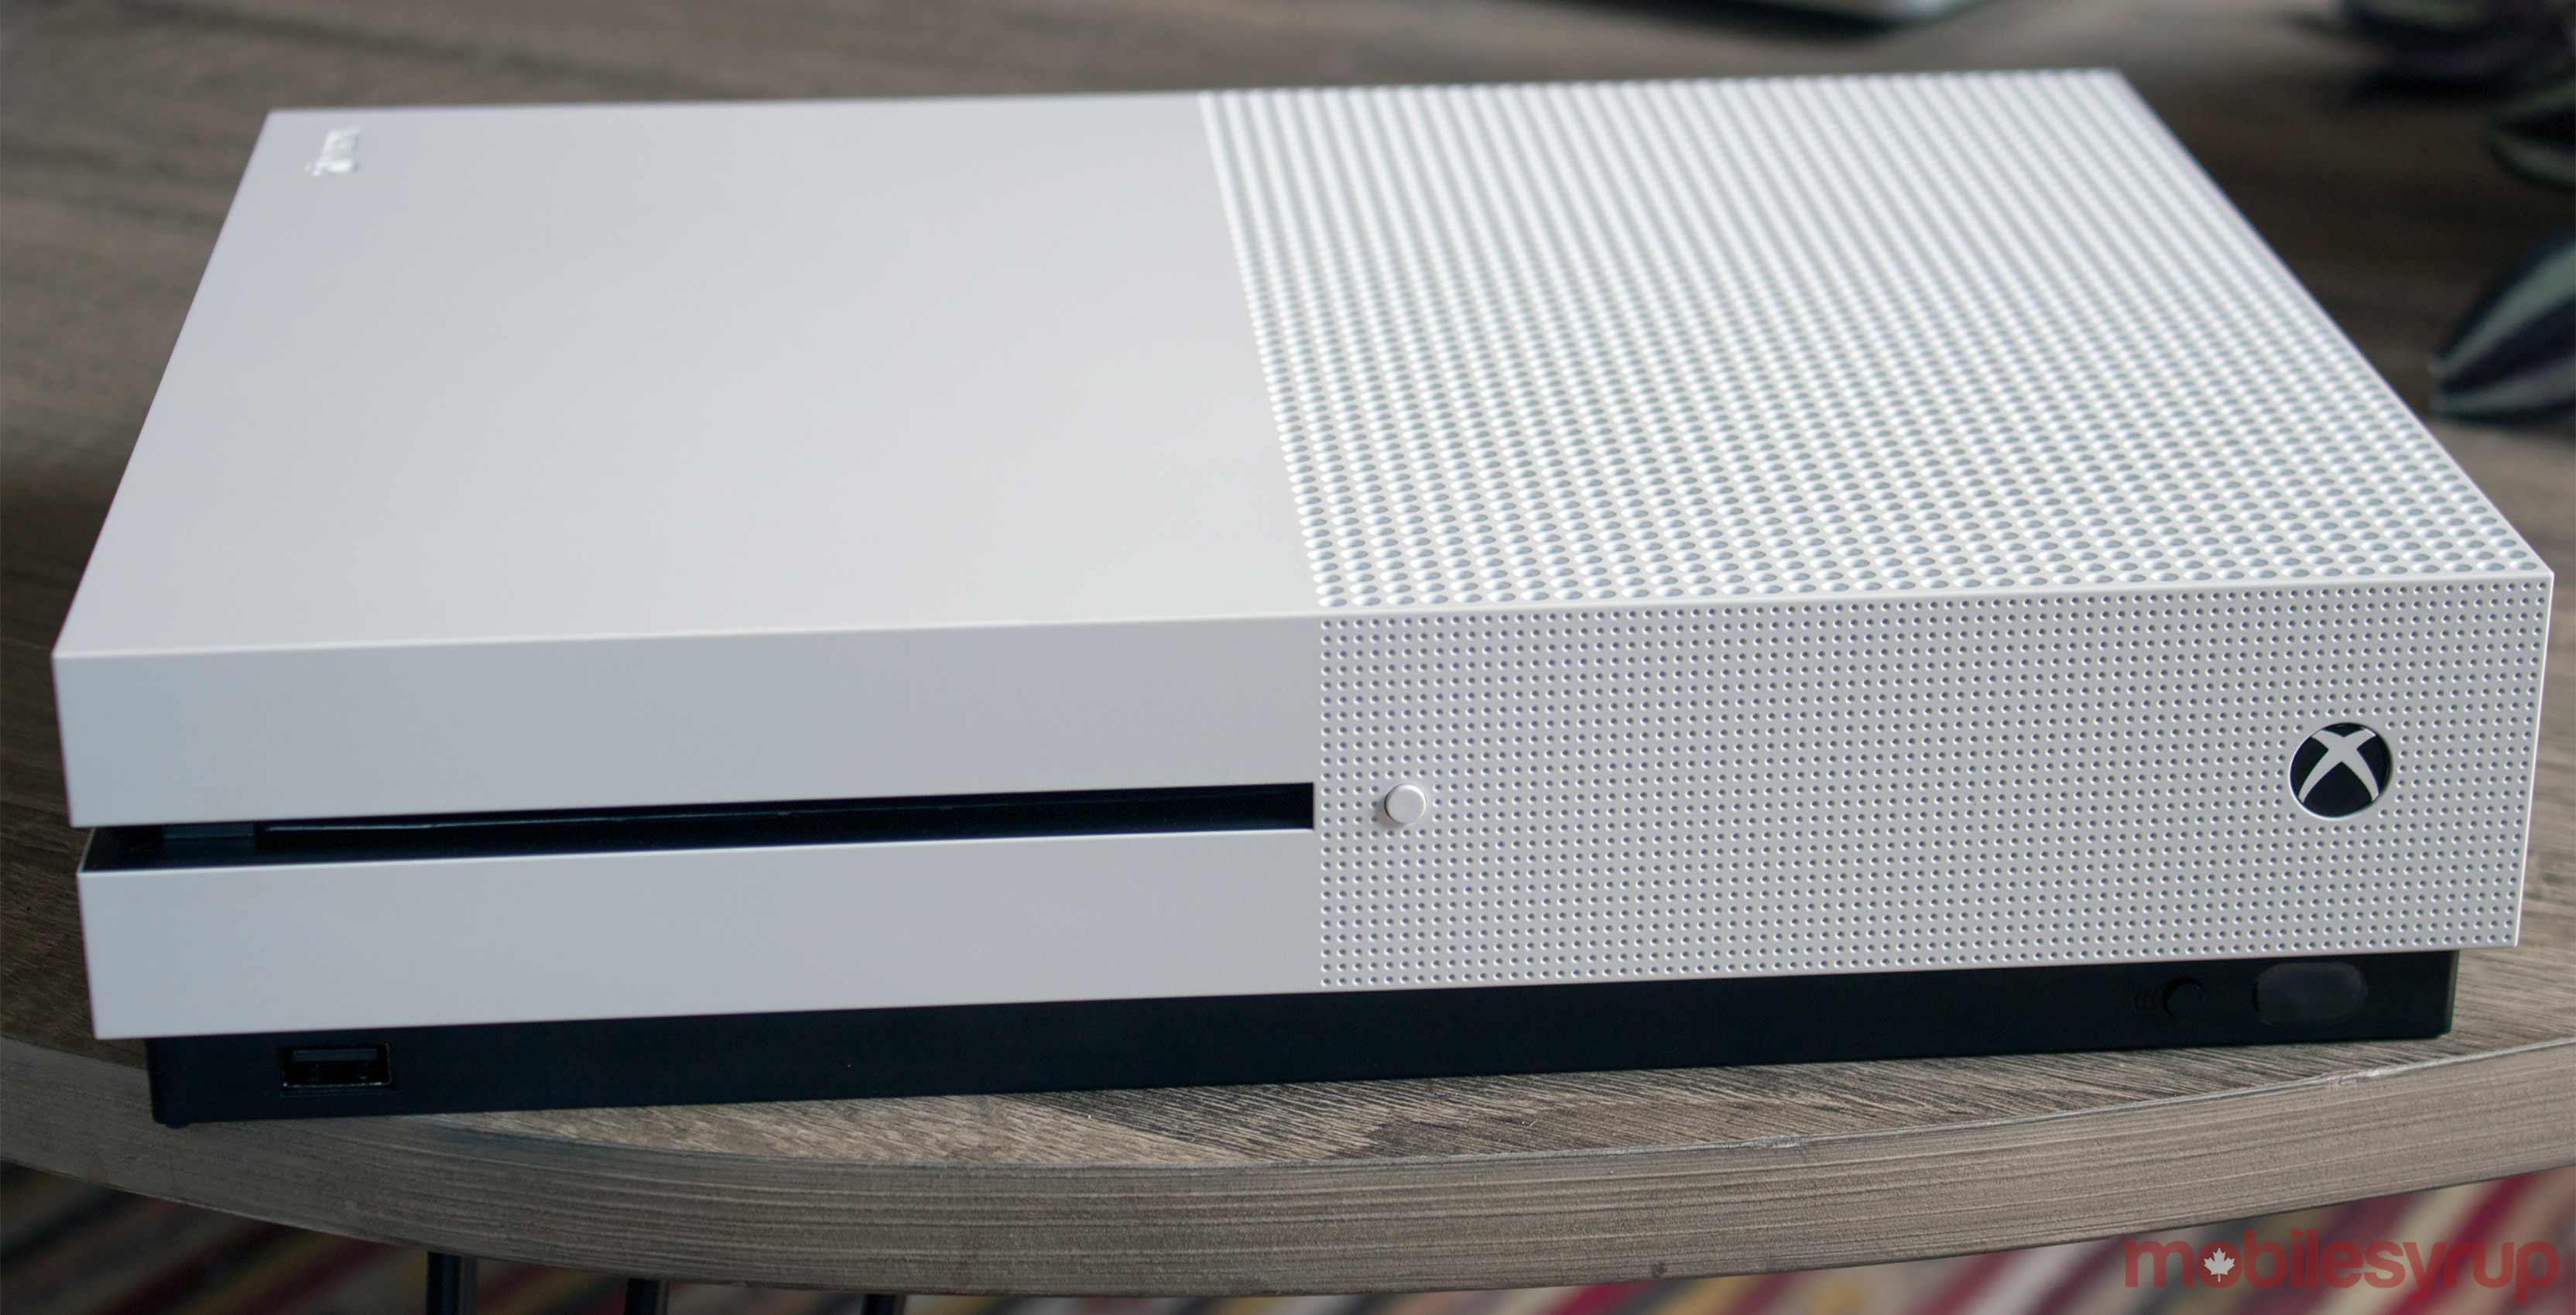 Xbox One S on table